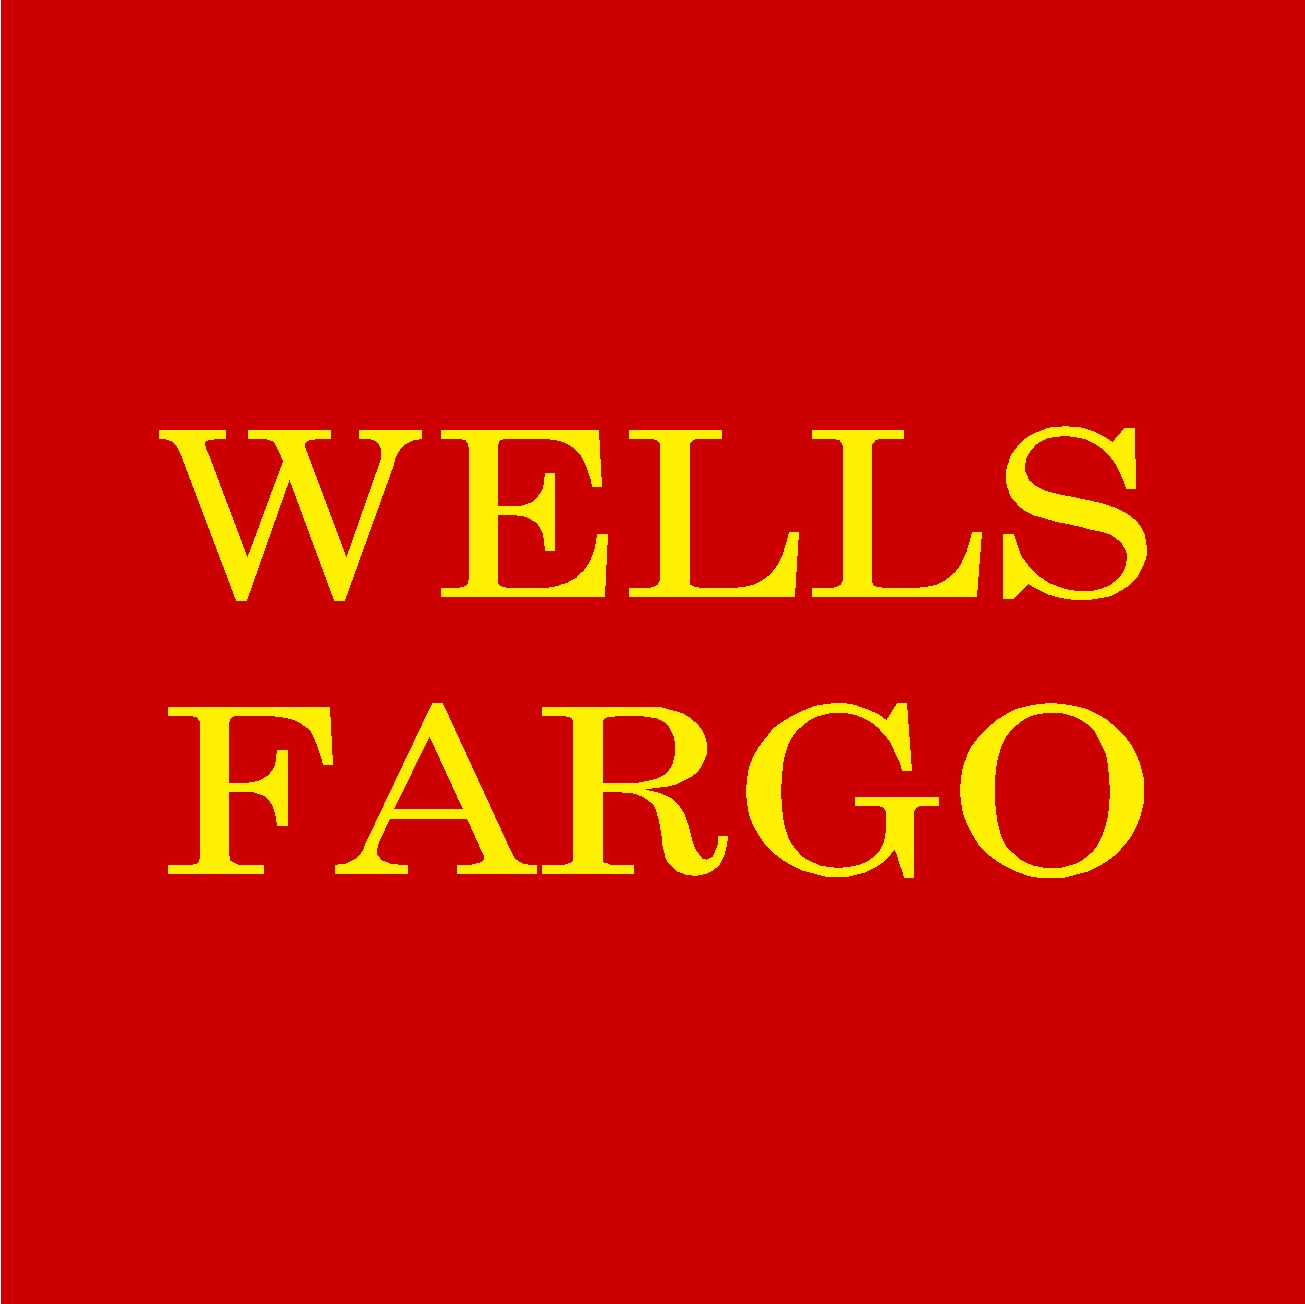 Wells fargo credit card services phone number for Wells fargo business credit card phone number